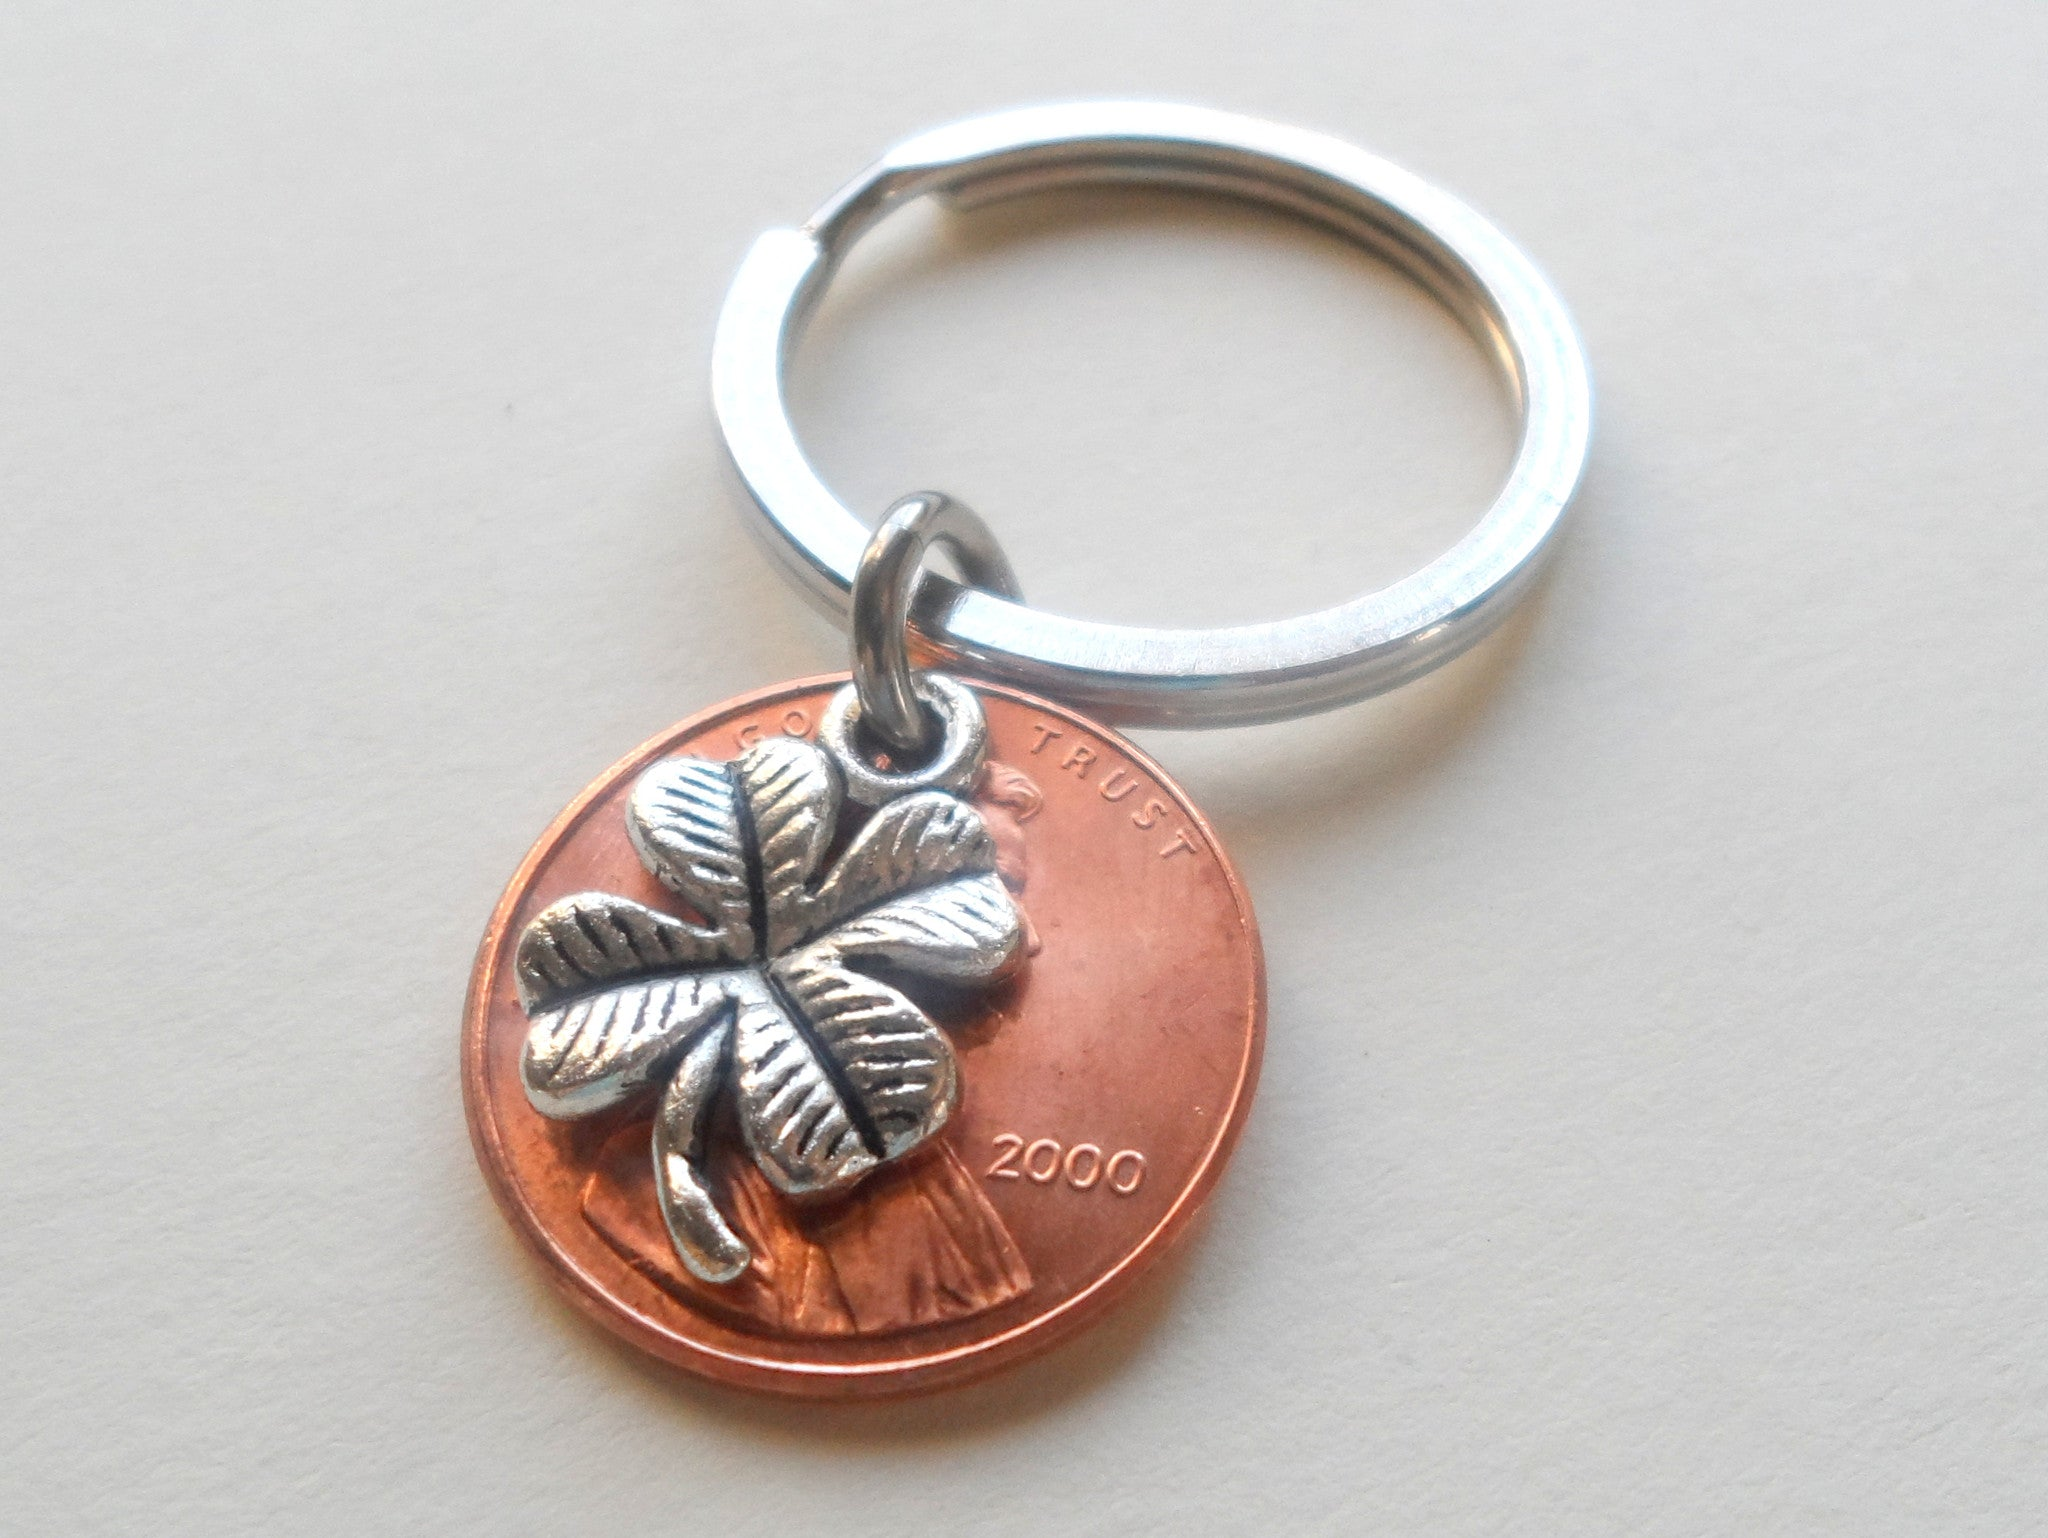 Clover Charm Layered Over 2000 Penny Keychain